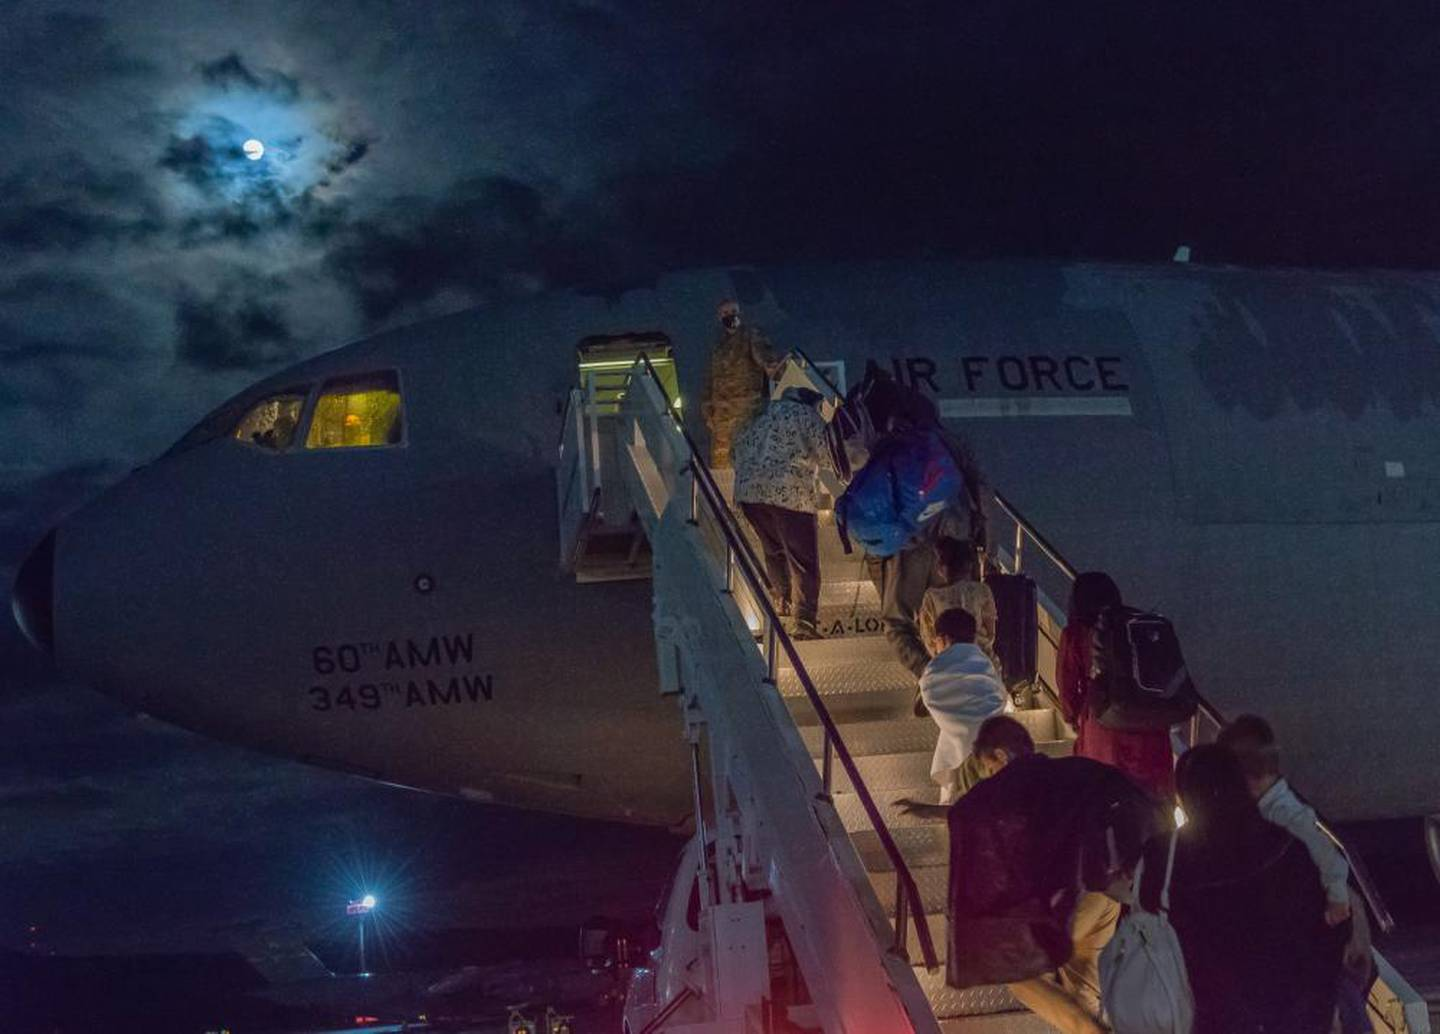 TRANSCOM boss vows to ramp up what is already one of the largest airlift operations in history